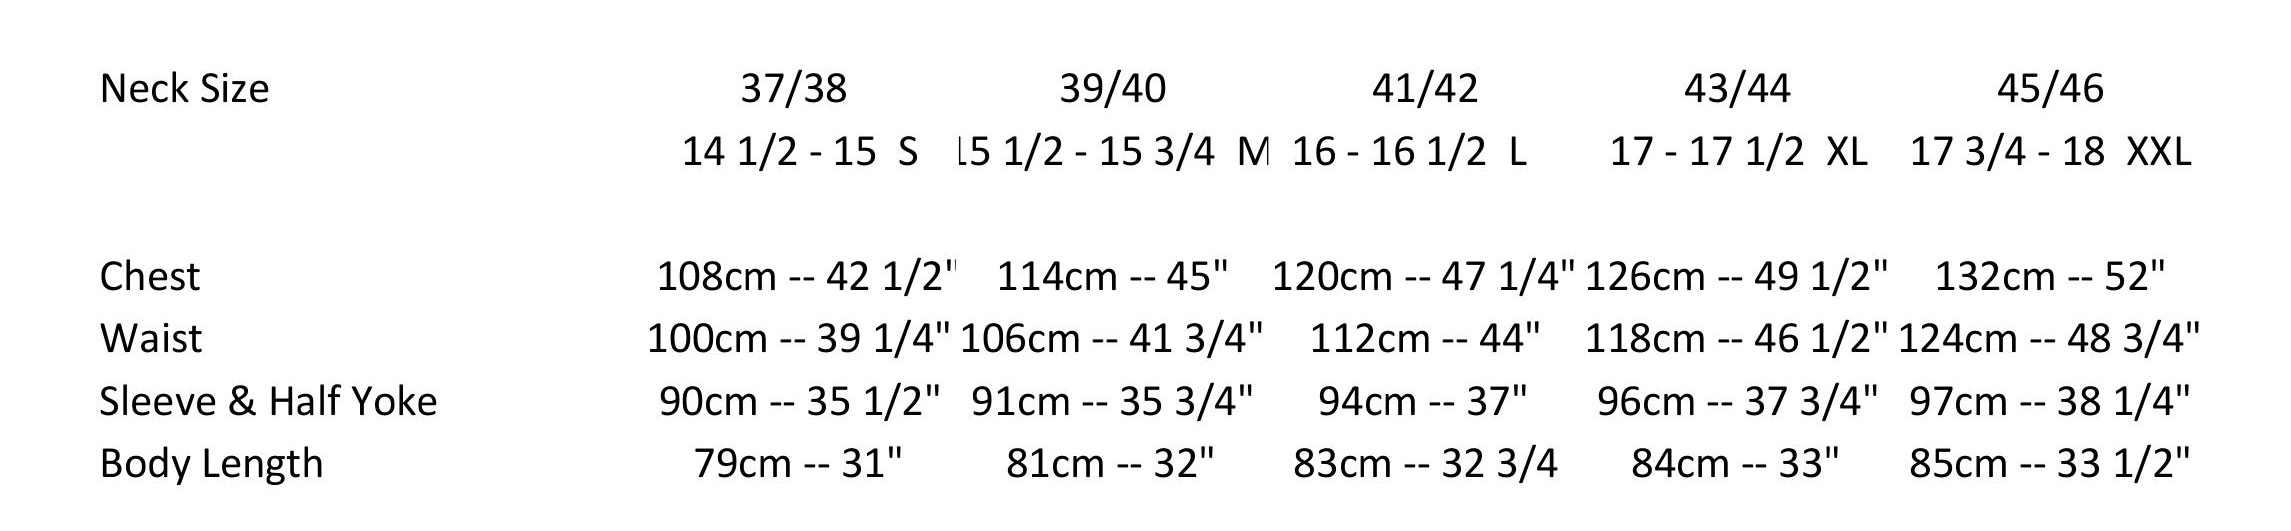 Eton Contemporary Fit Size Chart.jpg